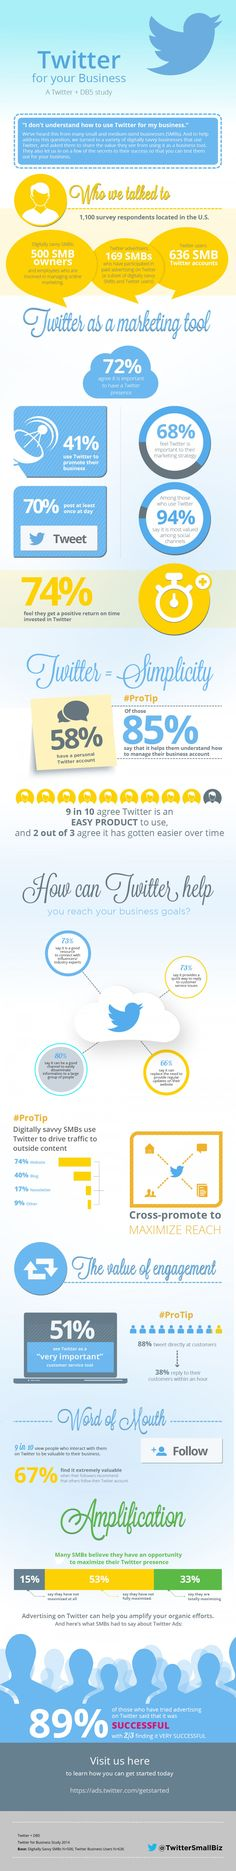 #Twitter for your Business #SocialMedia #SMB #infographic